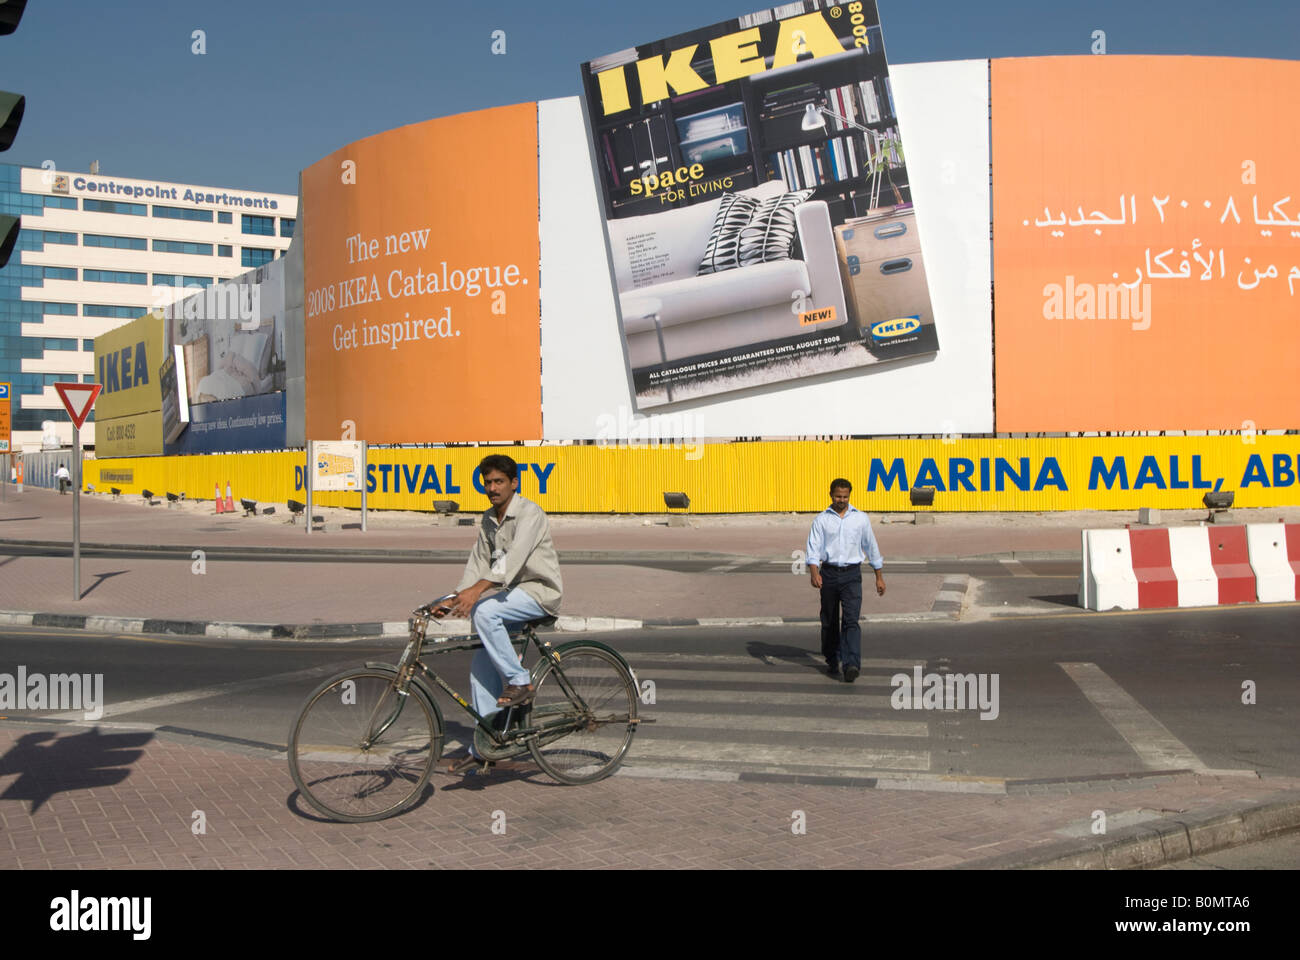 Etate Stock Photos Etate Stock Images Alamy # Ikea Annonce Publicite